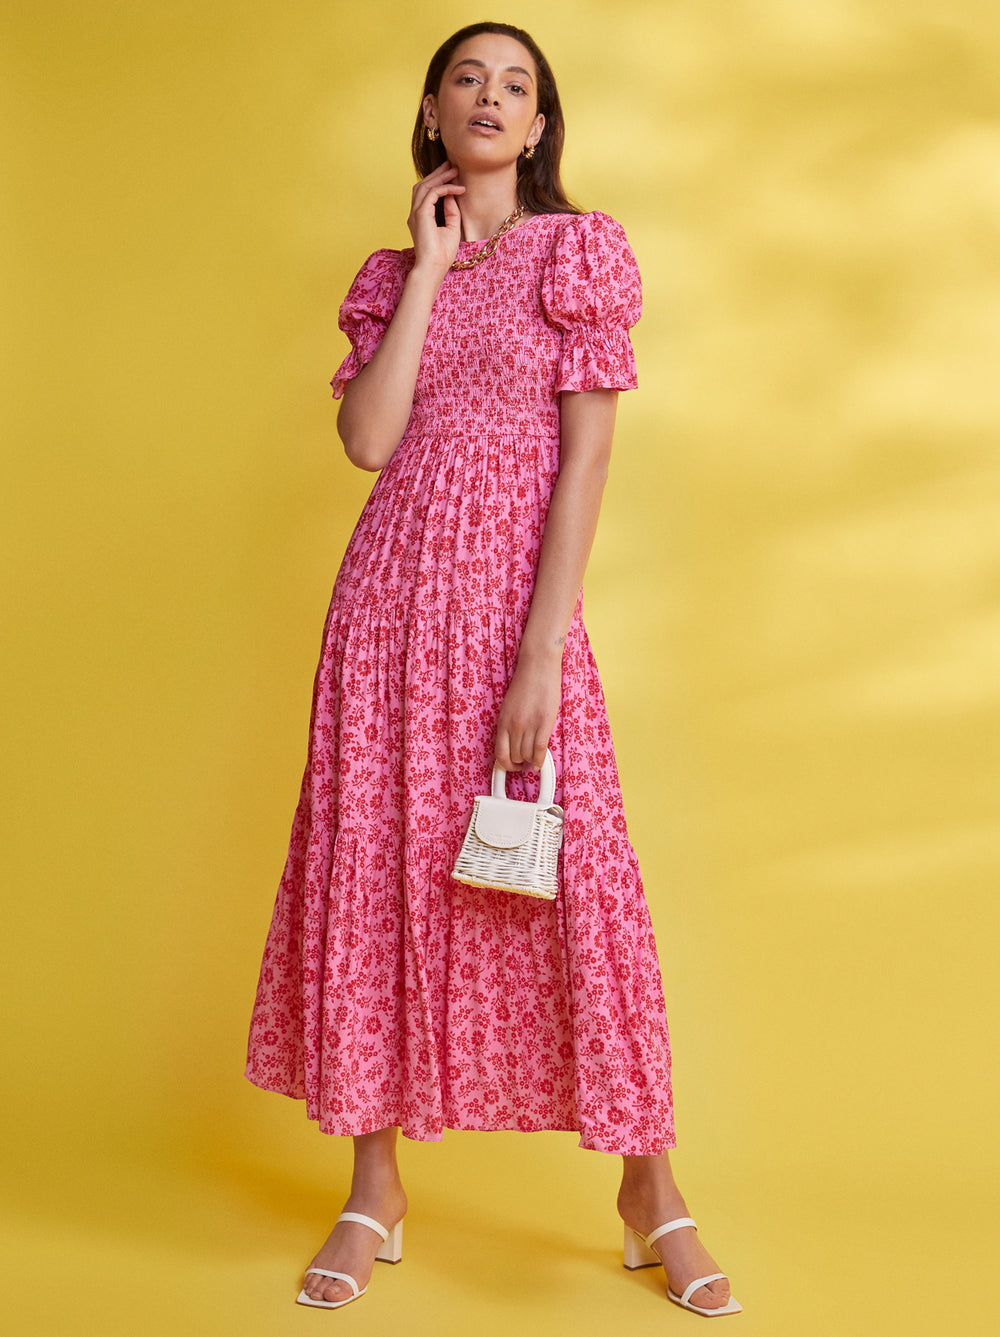 Persephone Shirred Pink Floral Dress by KITRI Studio